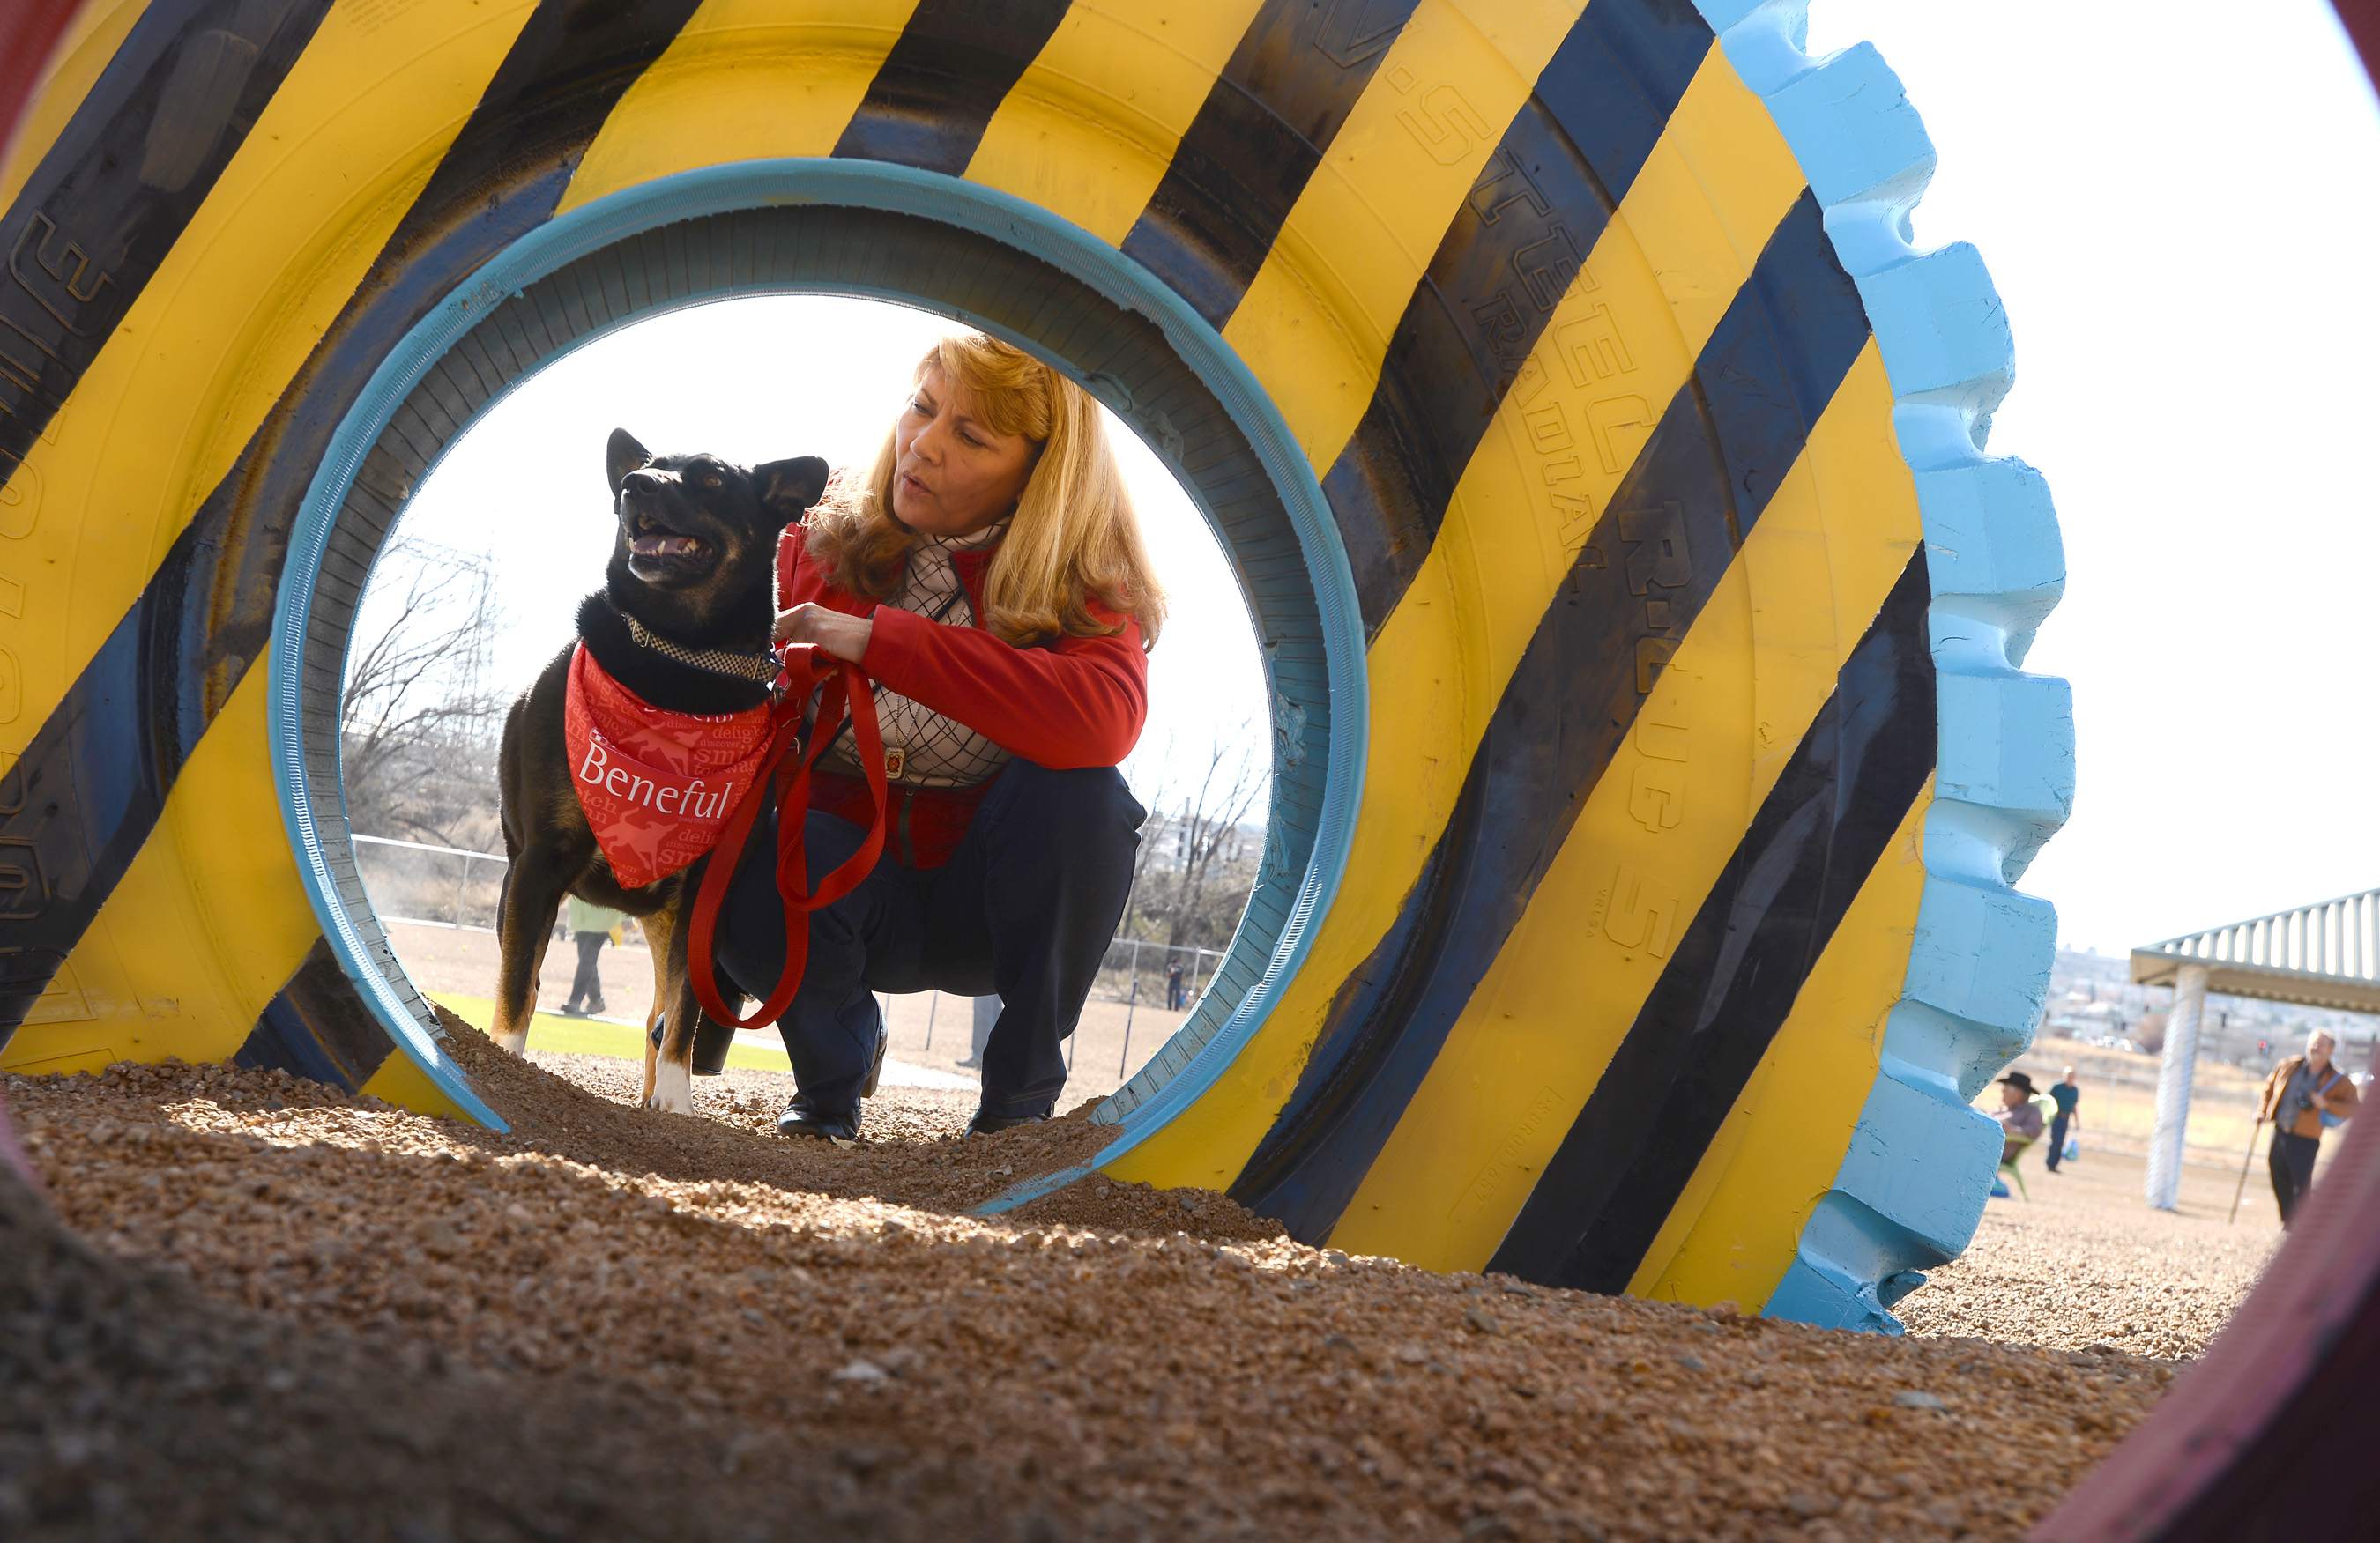 Linda Nichols, Winner of the 2013 Beneful® Dream Dog Park Contest, and her dog Callie celebrated at Willow Creek Dog Park as the fourth $500,000 Beneful Dream Dog Park renovation was unveiled on Wednesday, Dec. 10, 2014 in Prescott, Arizona. (Josh Biggs/AP Images for Beneful)